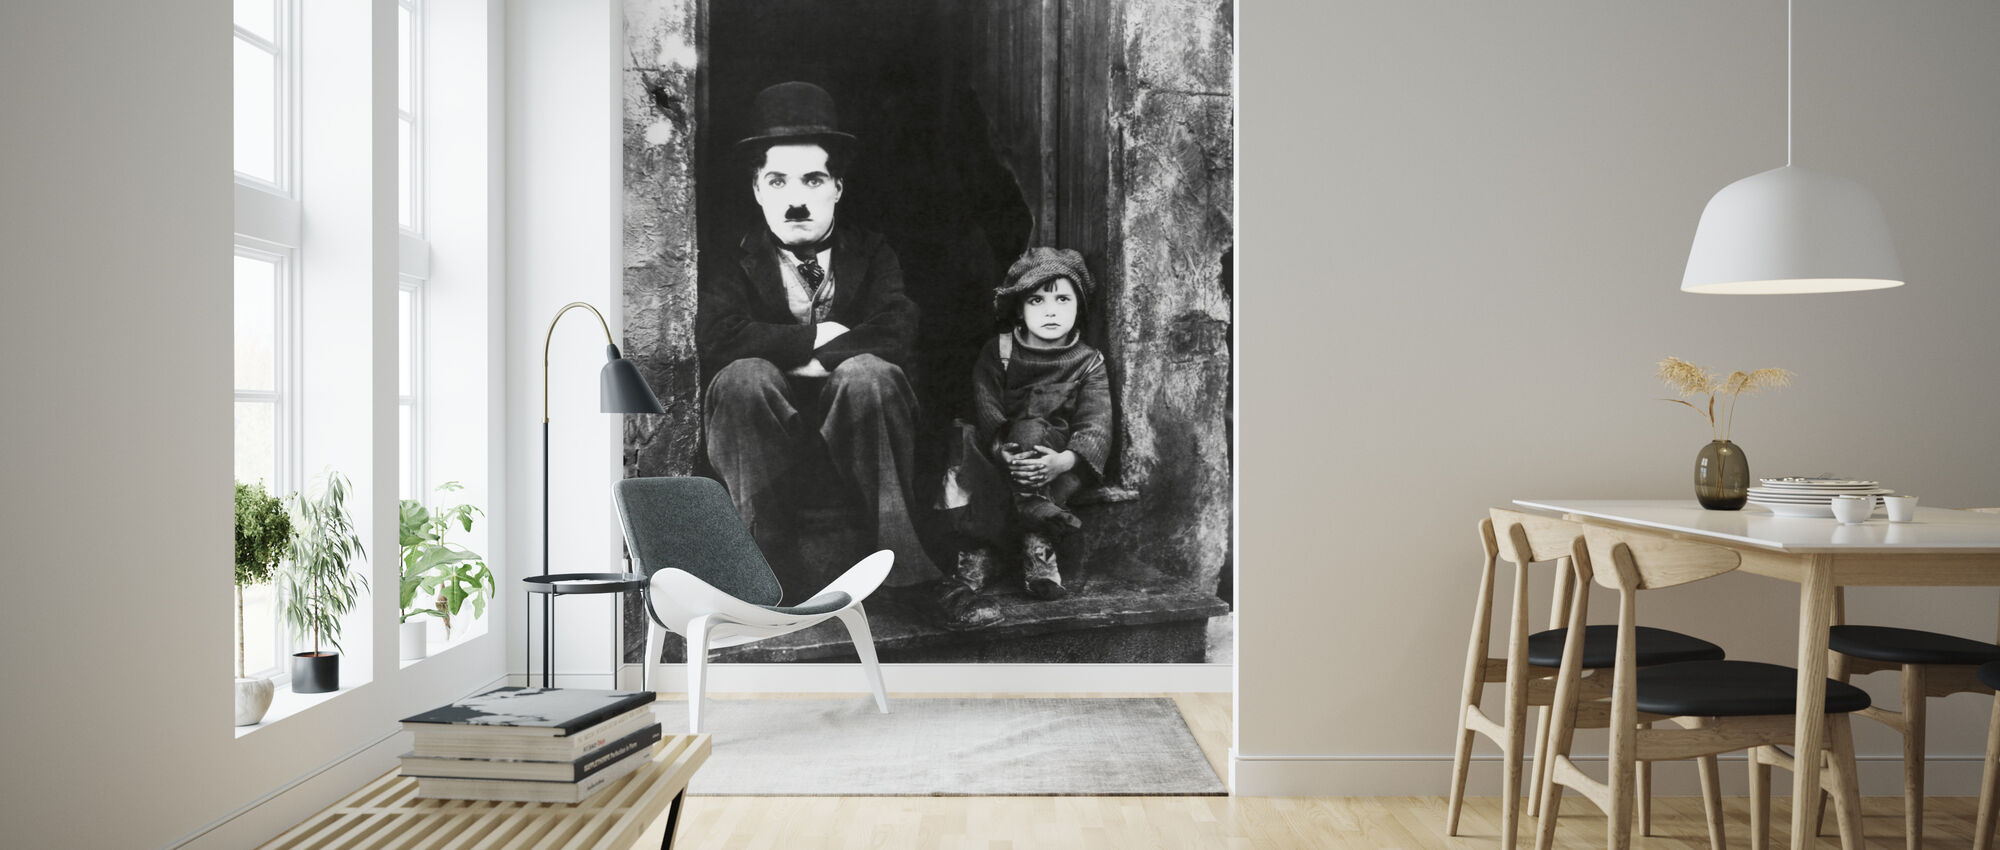 Charlie Chaplin and Jackie Coogan - Wallpaper - Living Room